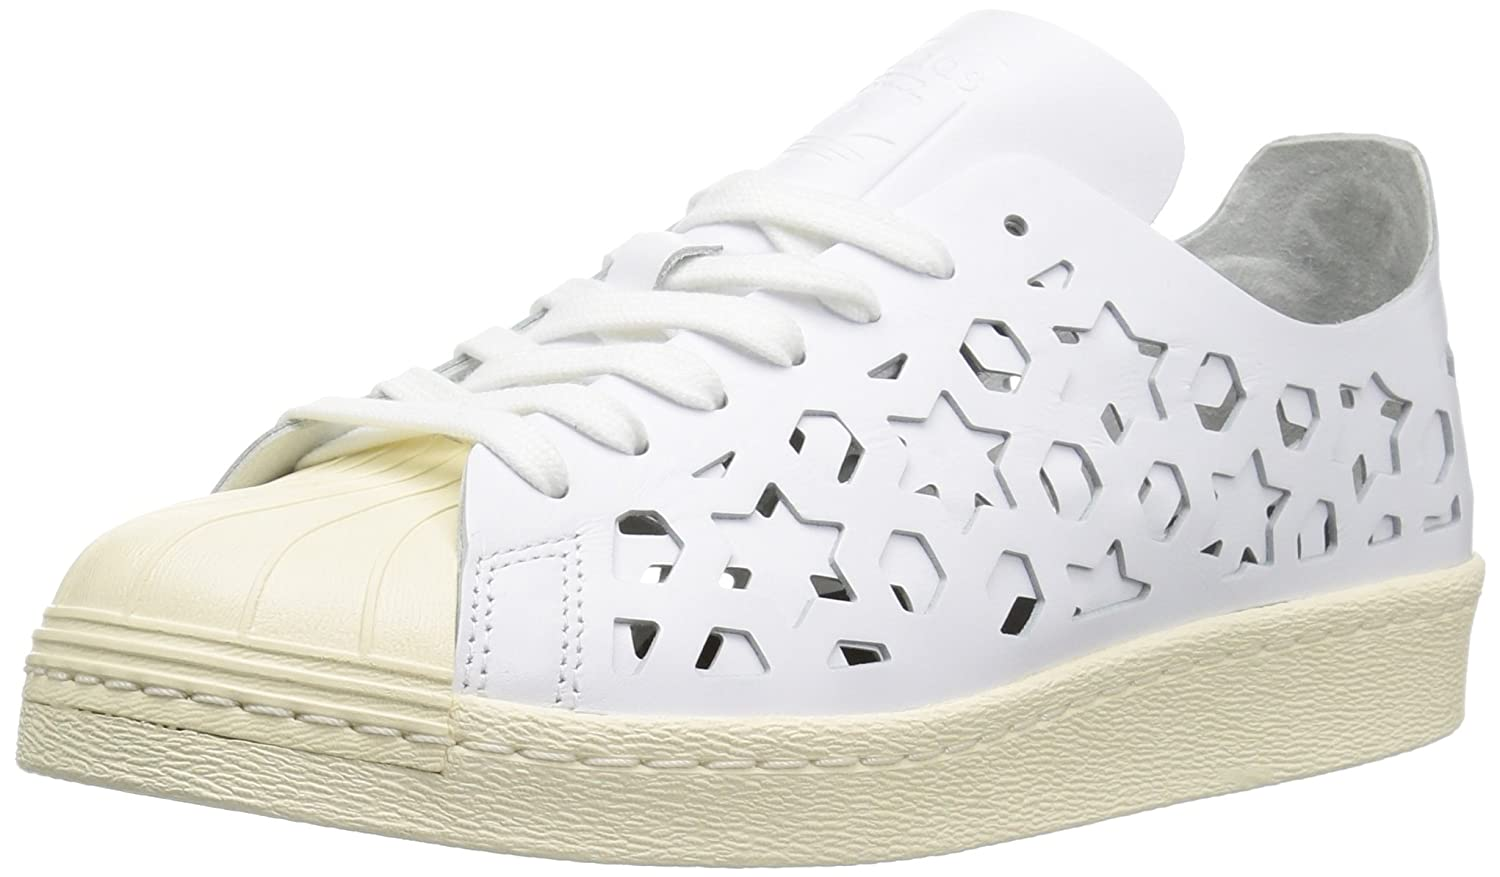 adidas Originals Women's Superstar 80s Cut Out W B071WSTNK2 10 B(M) US|Ftwwht,ftwwht,cwhite